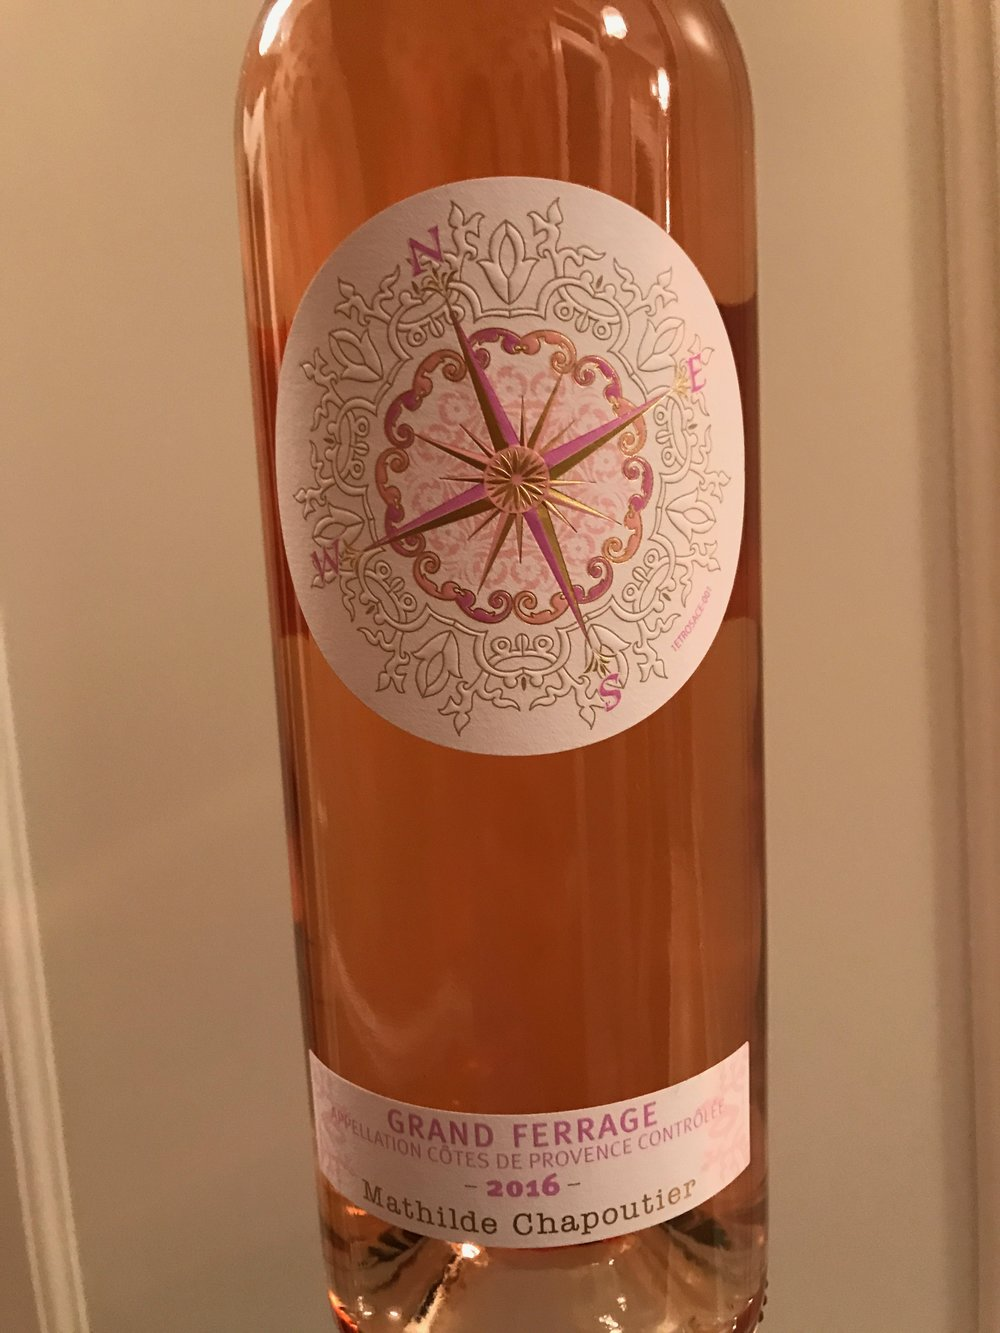 The beautiful label of the M. Chapoutier Grand Ferrage rosé was designed by Mathilde herself.